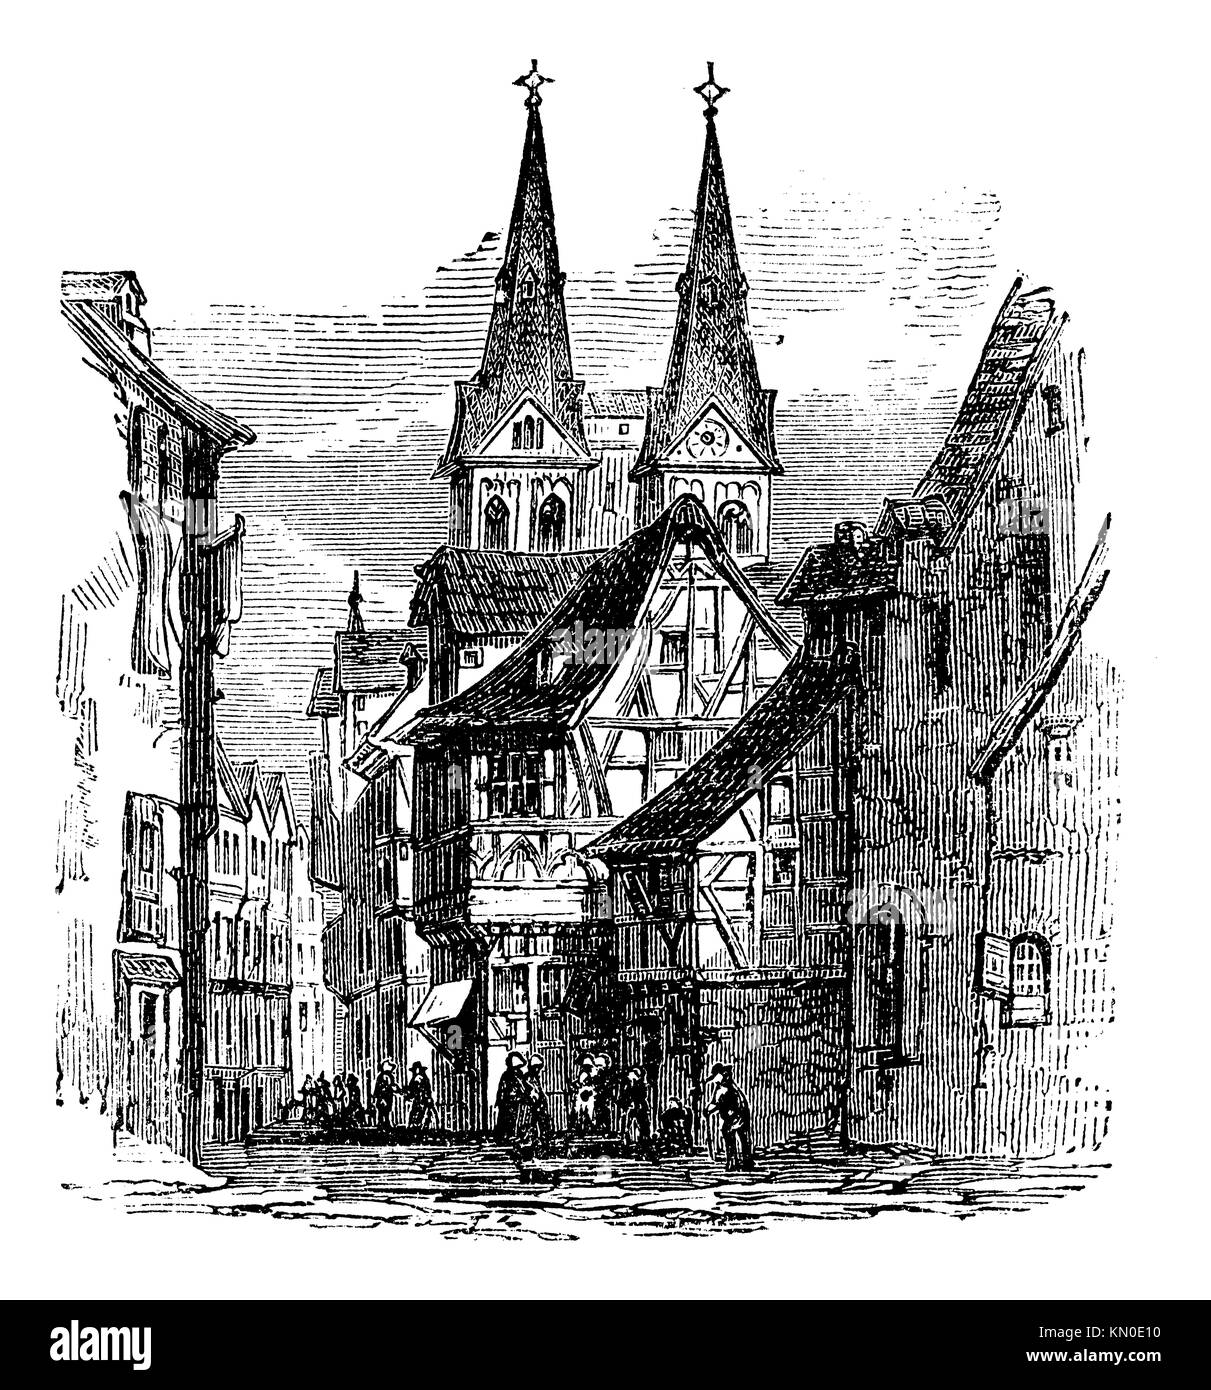 Boppard town in Rhein-Hunsruck-Kreis, Rhineland-Palatinate, Germany, old engraved illustration of the town, Boppard, - Stock Image